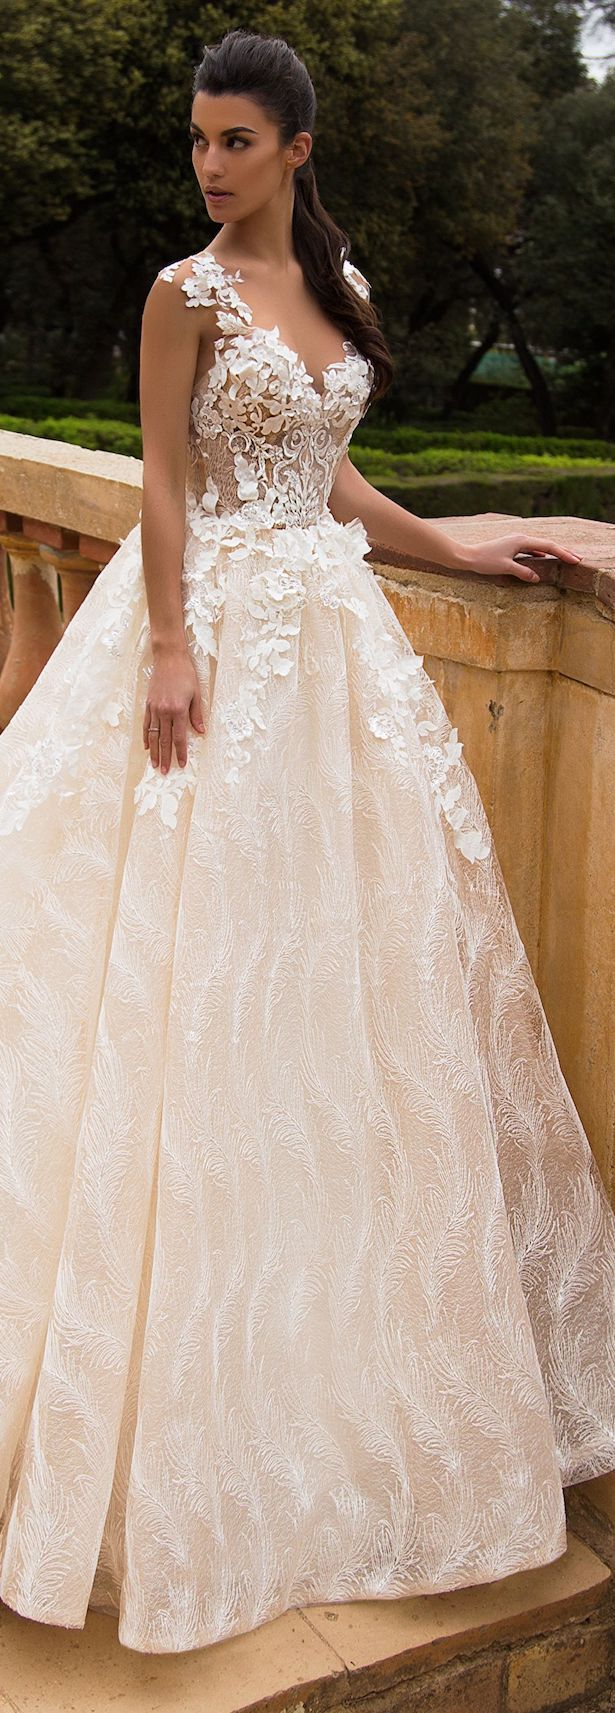 Wedding-Dresses-0973